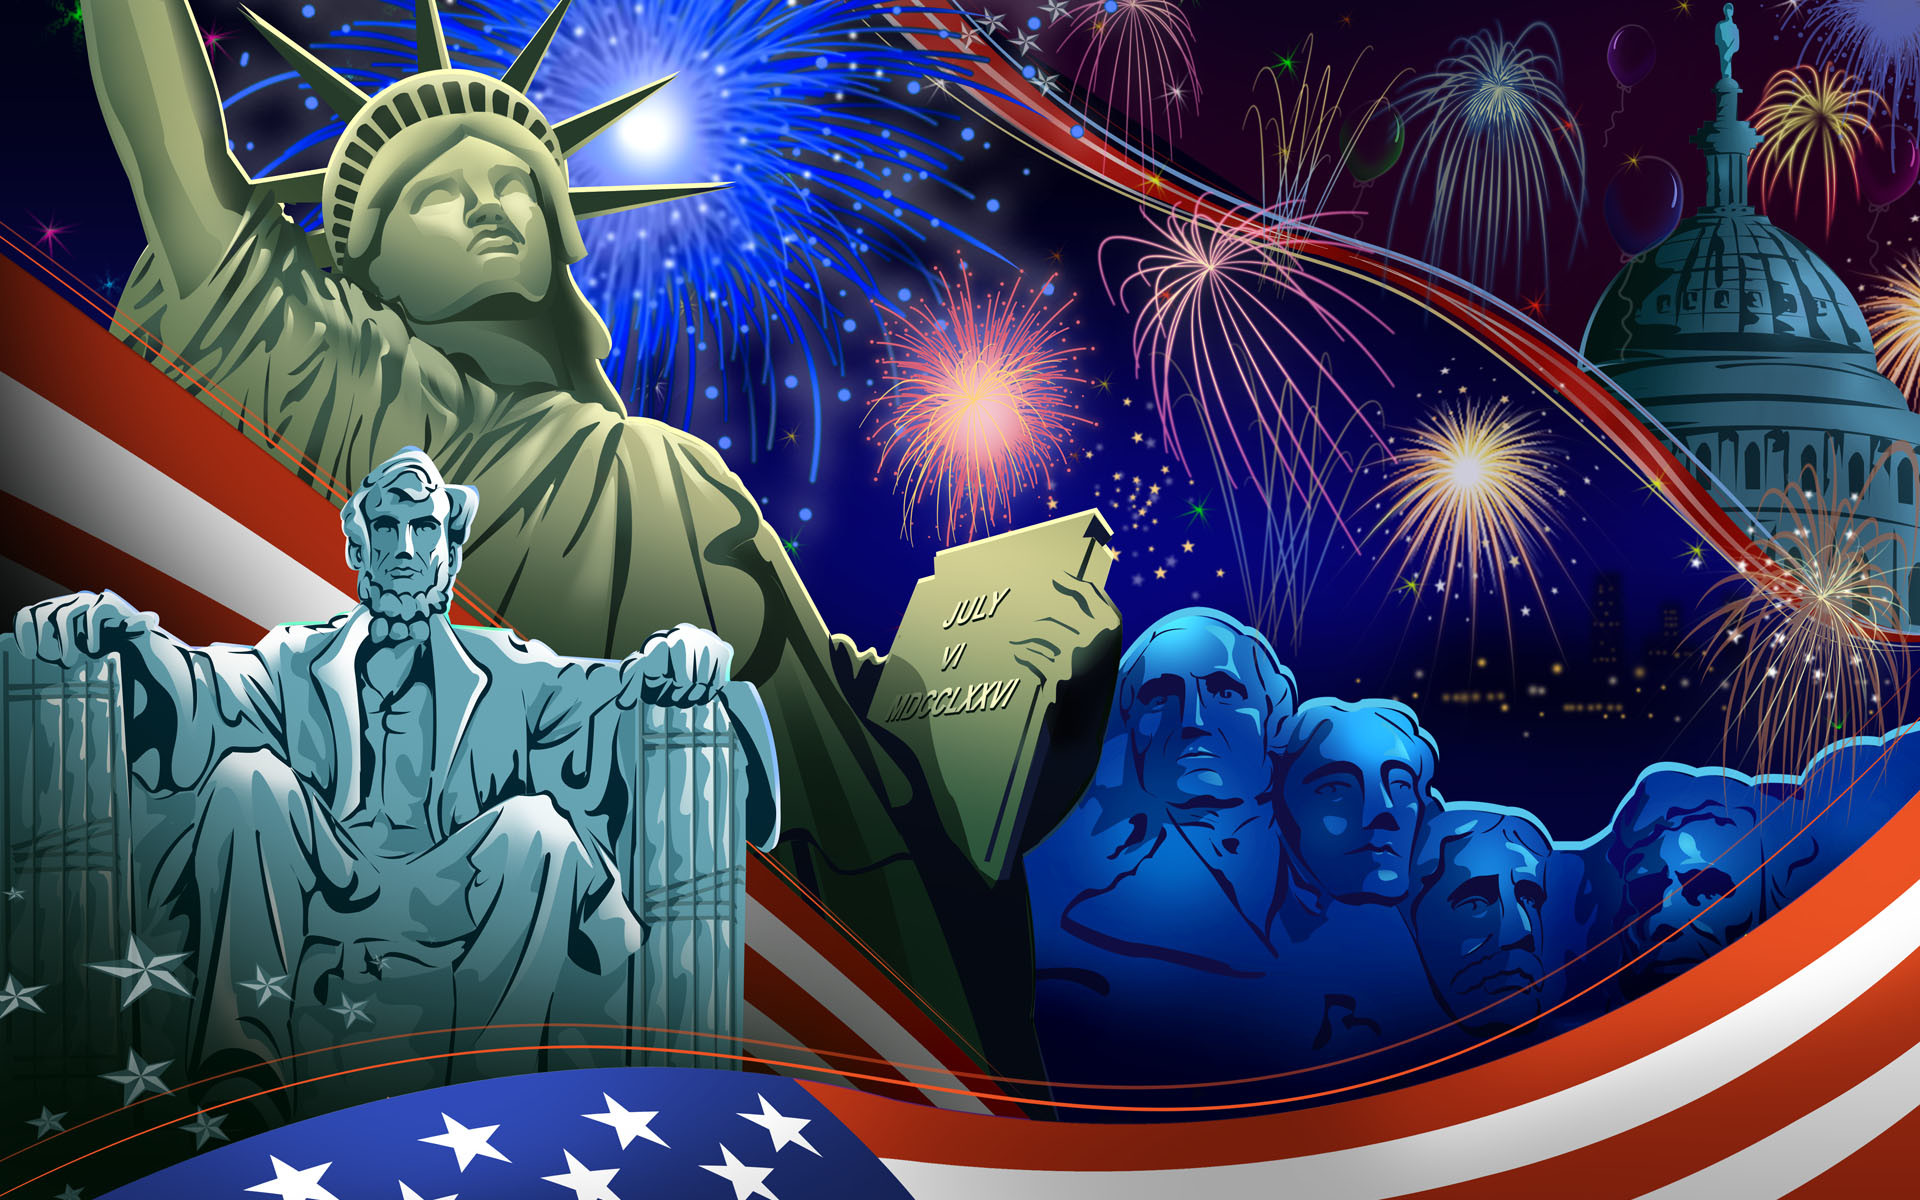 1920x1200 HD Wallpaper for 4th July Amazing 4th July Screensavers Free Download